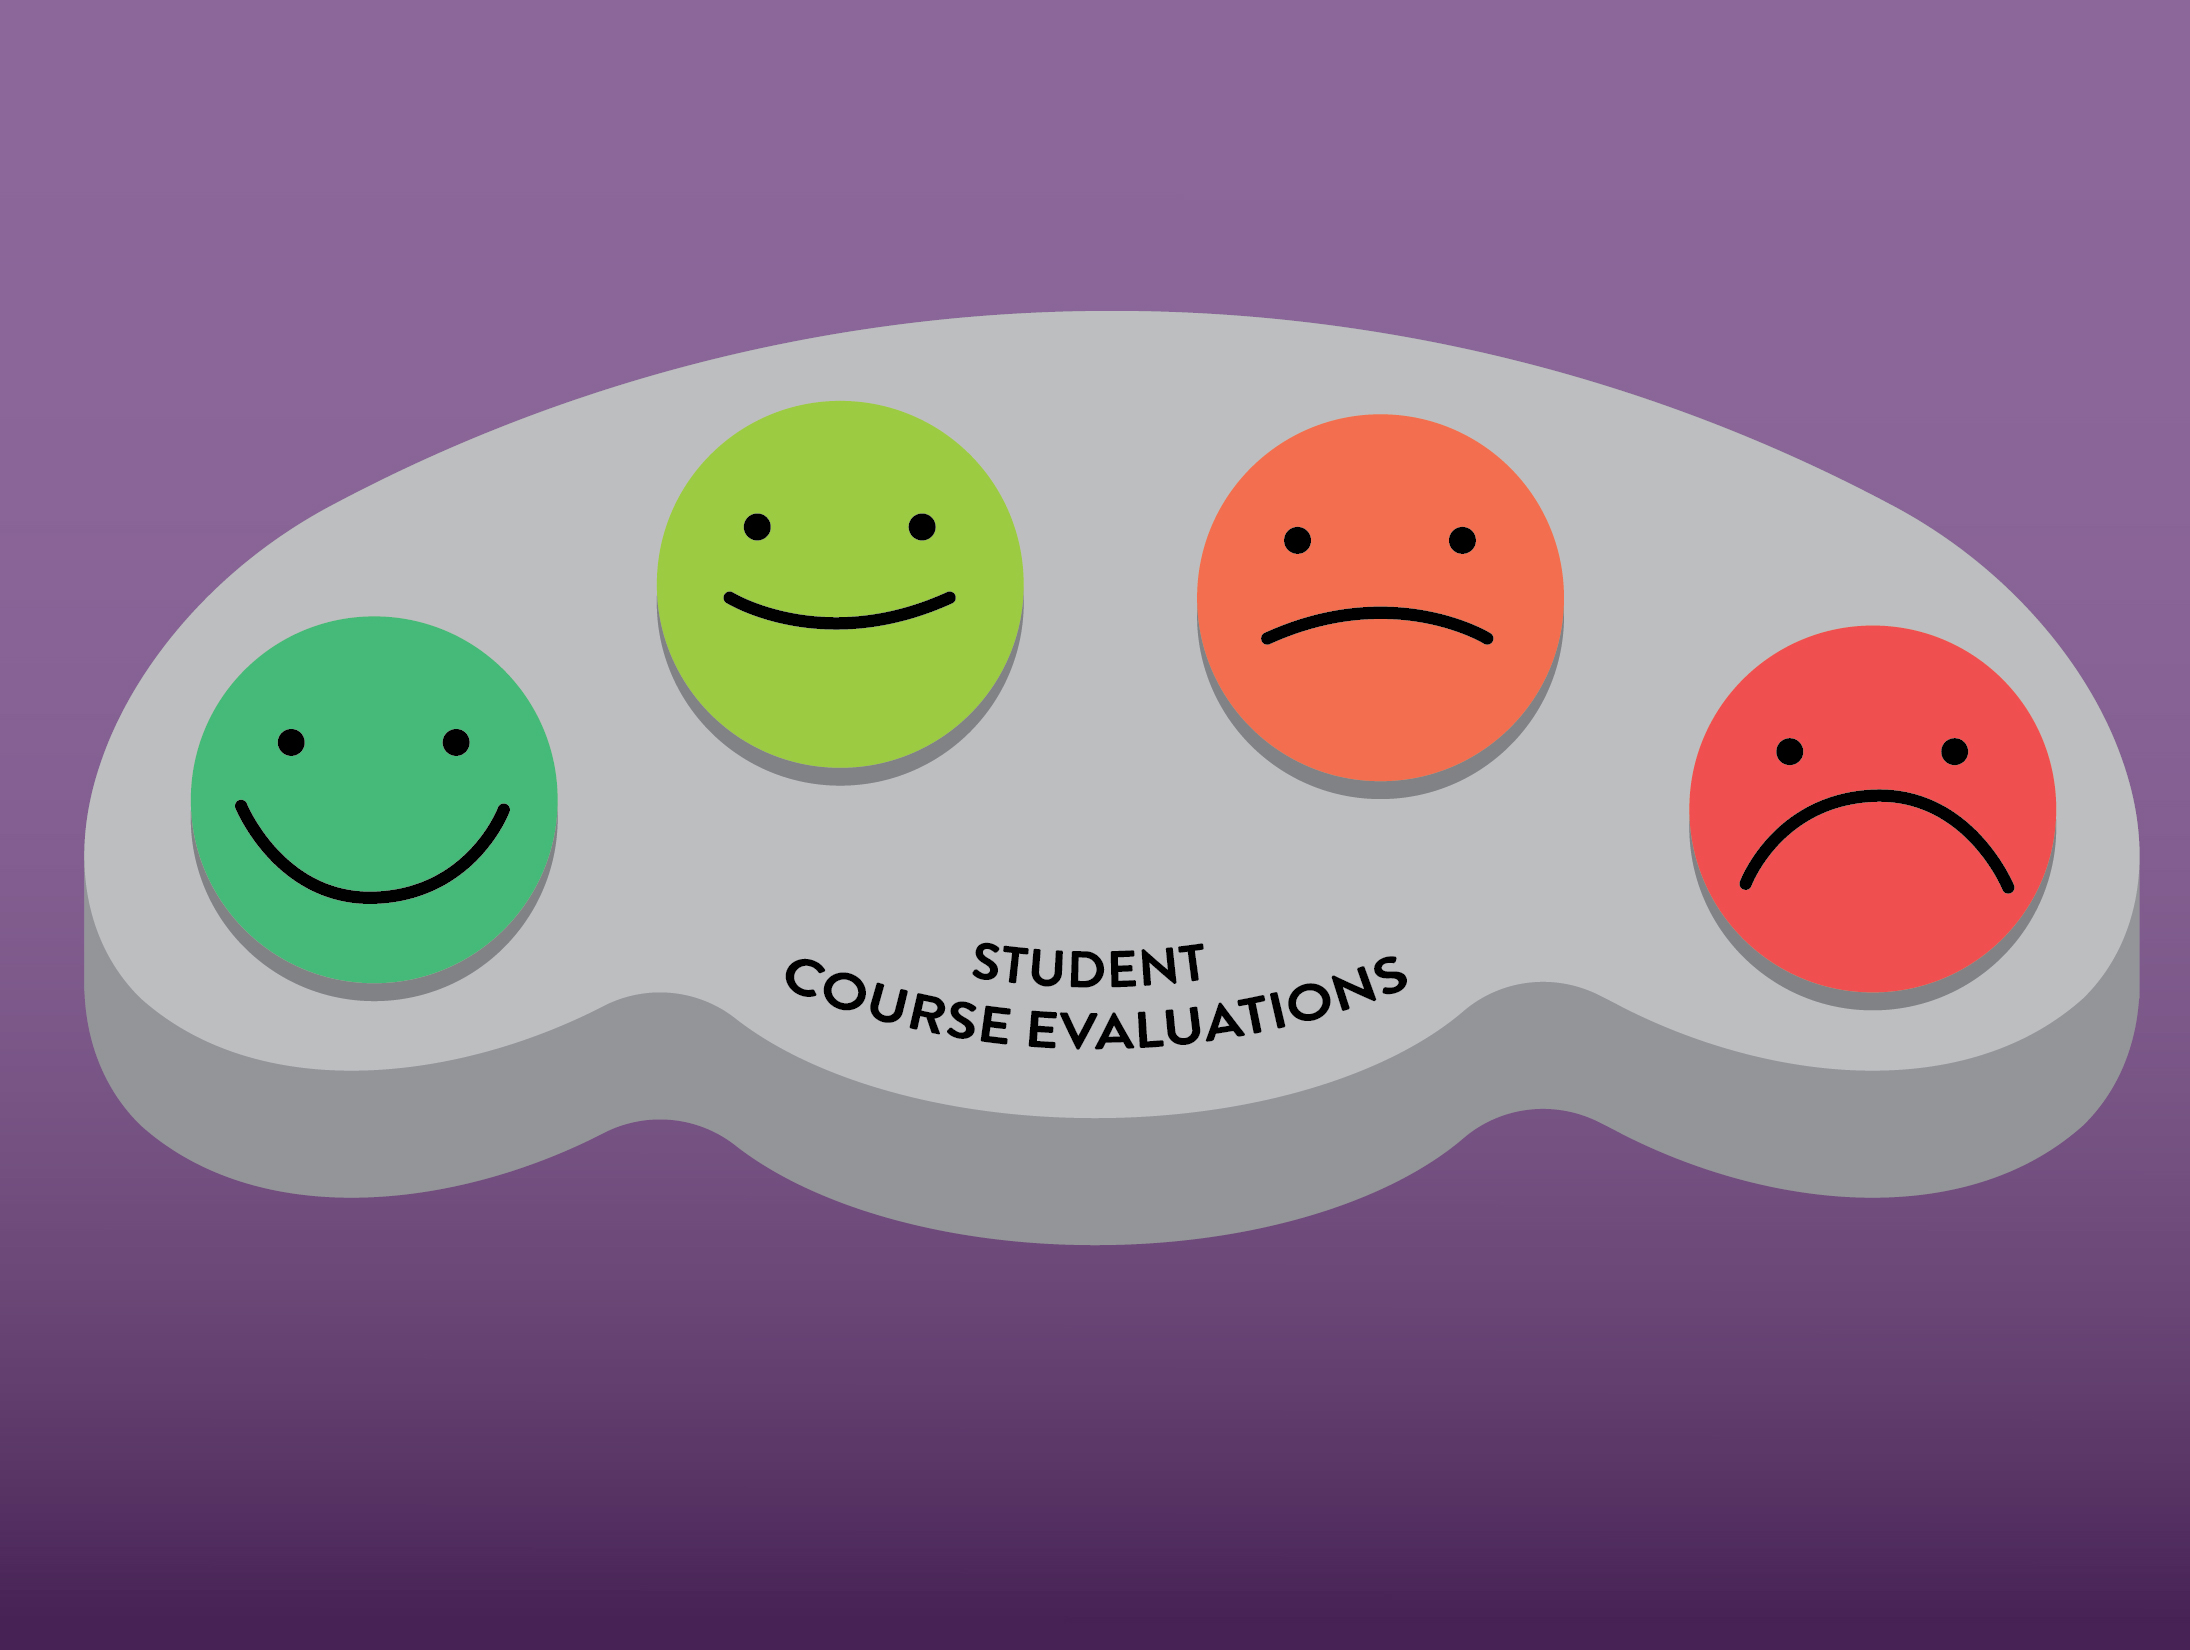 Are Course Evaluations Doing More Harm than Good?